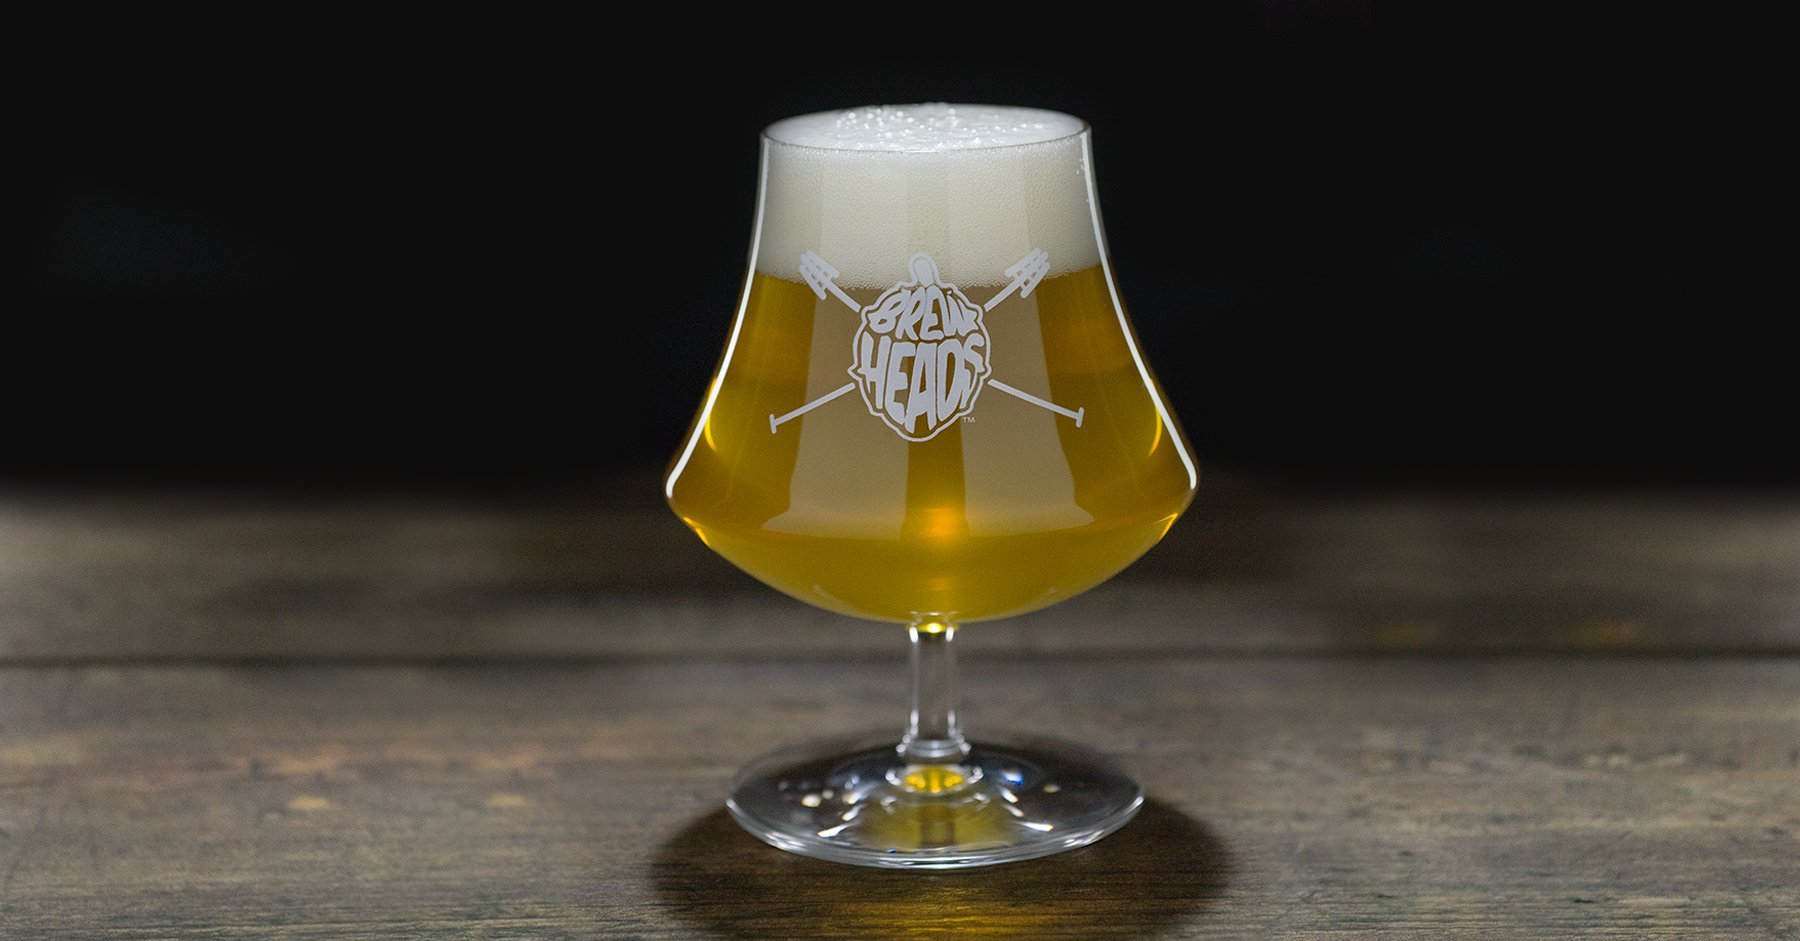 BrewHeads snifter. Perfect craftbeer glassware for beer fans and better then the Teku